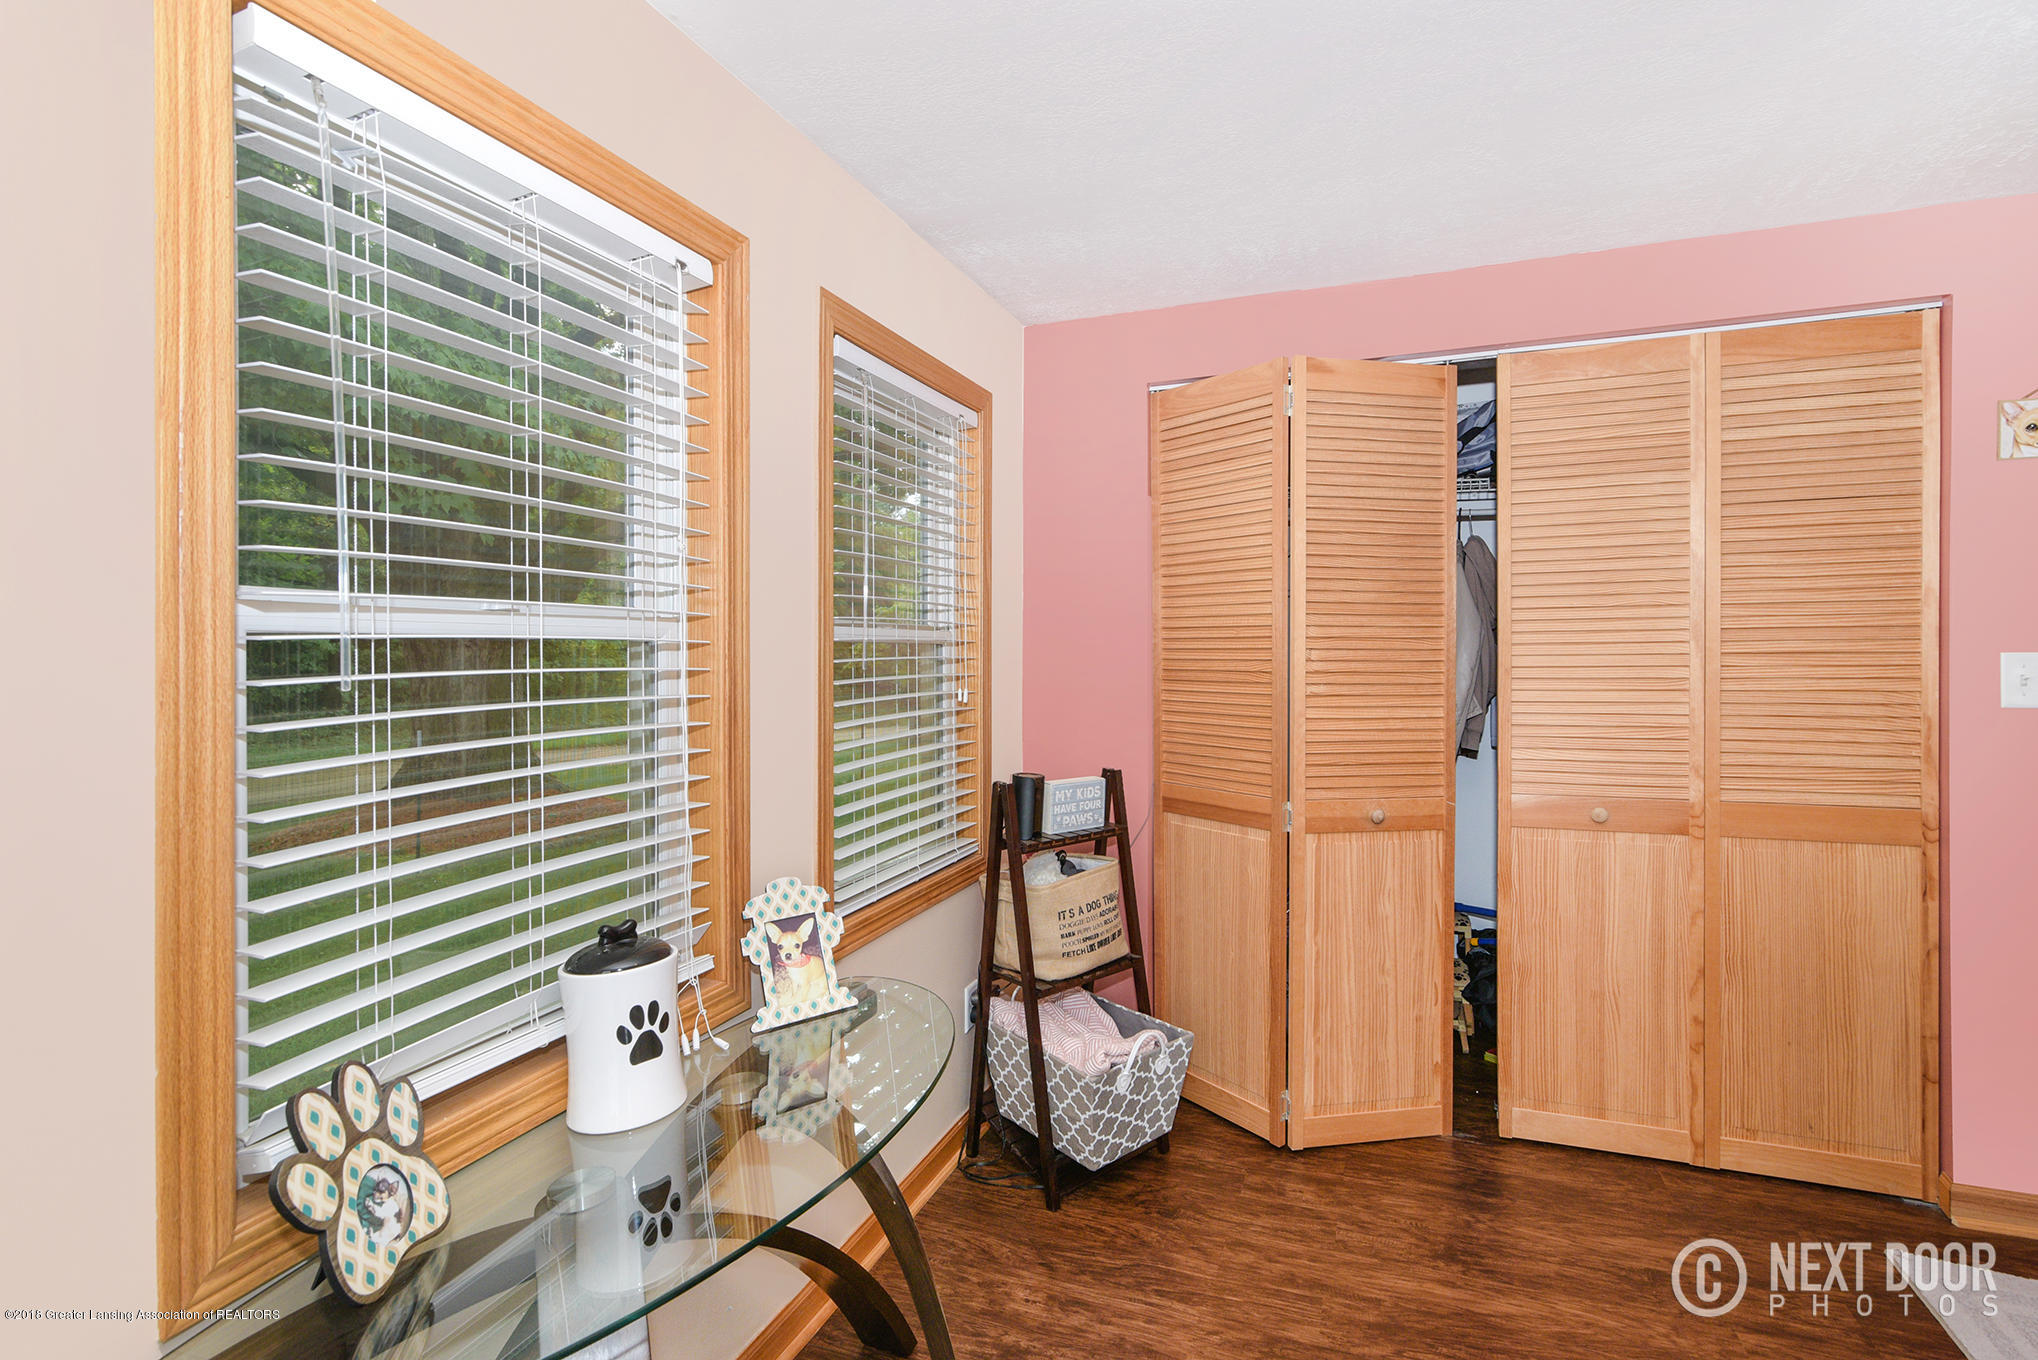 744 S Stine Rd - FrontAdd - 21